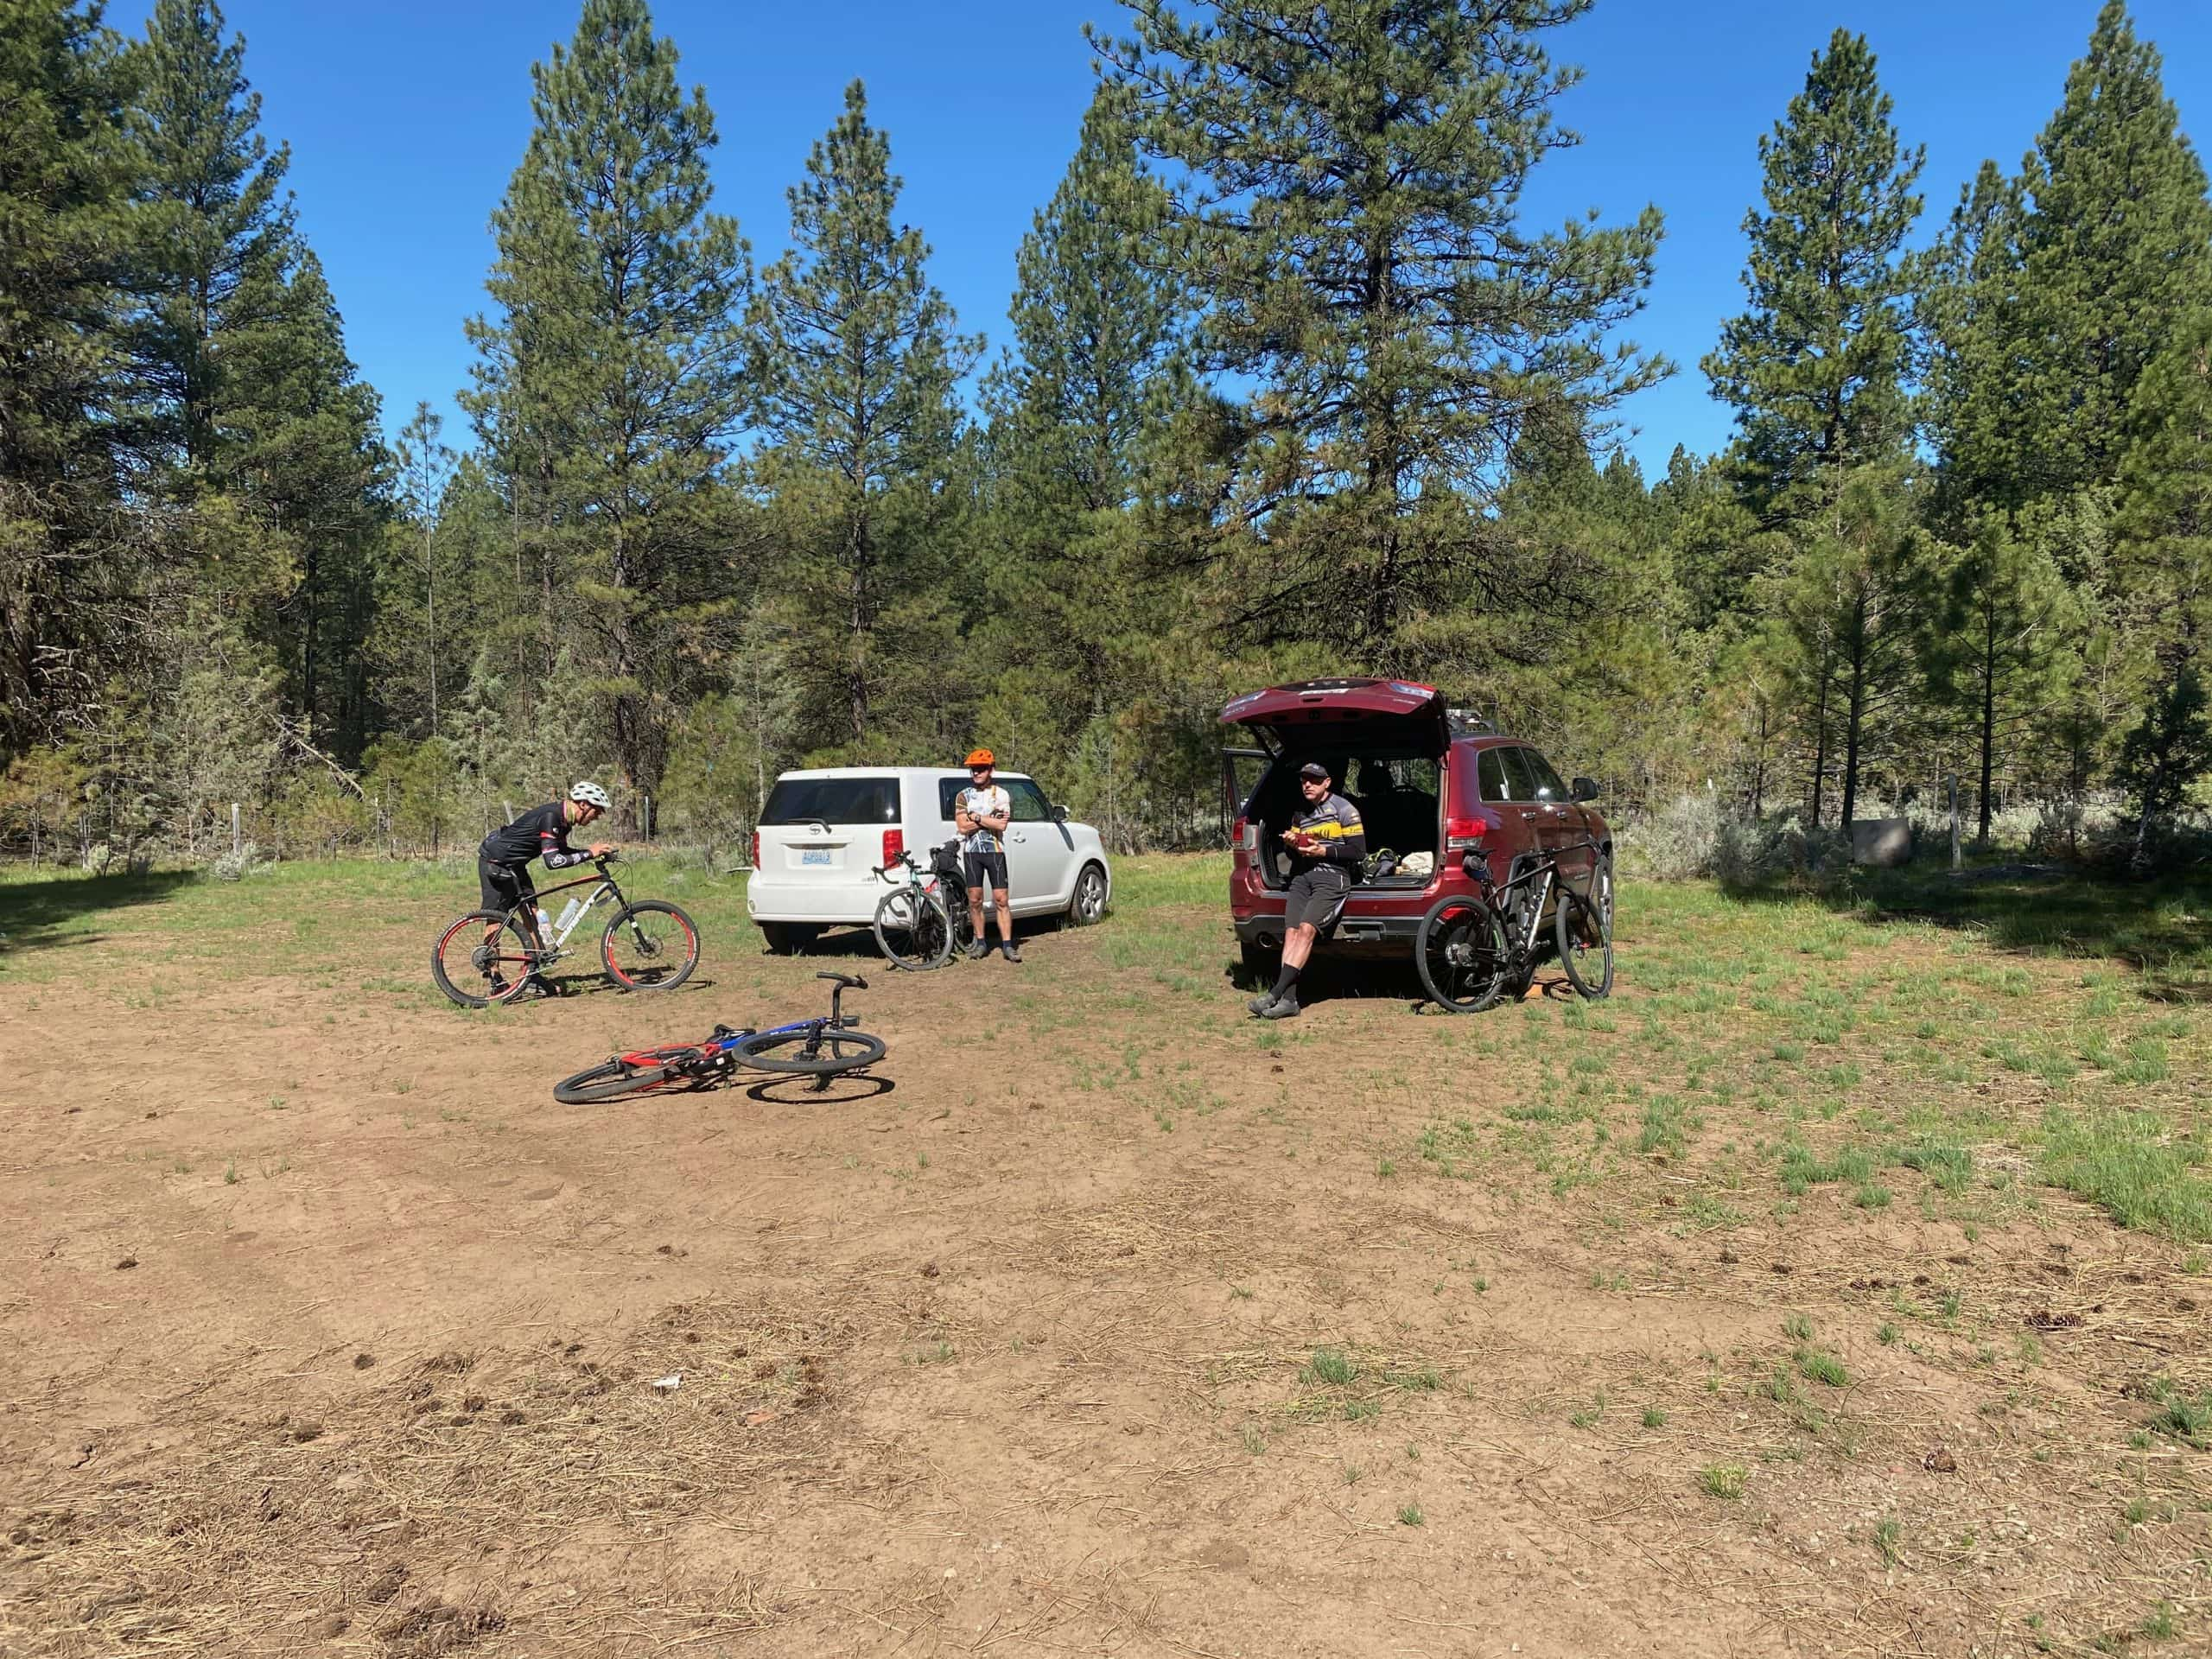 The parking area at Salter's cabin in the Ochoco National forest near Paulina, OR.